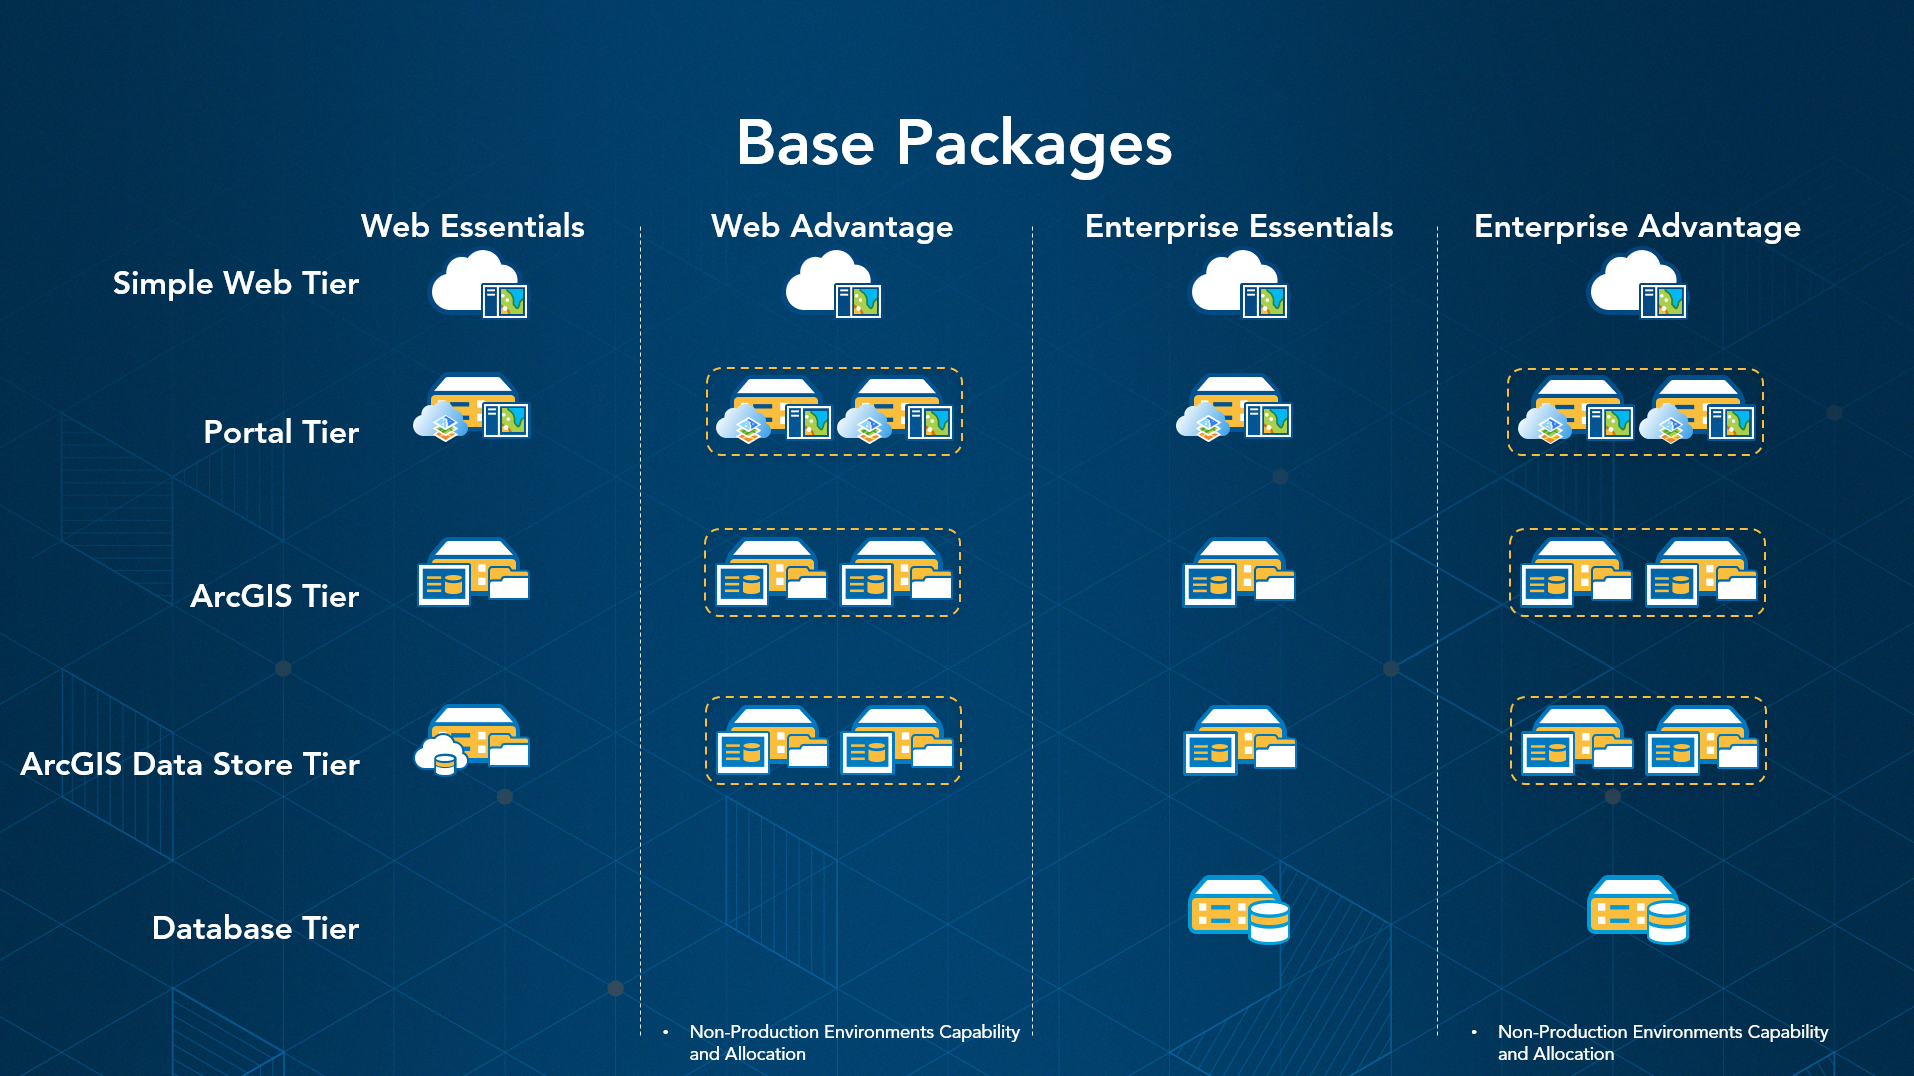 Base packages